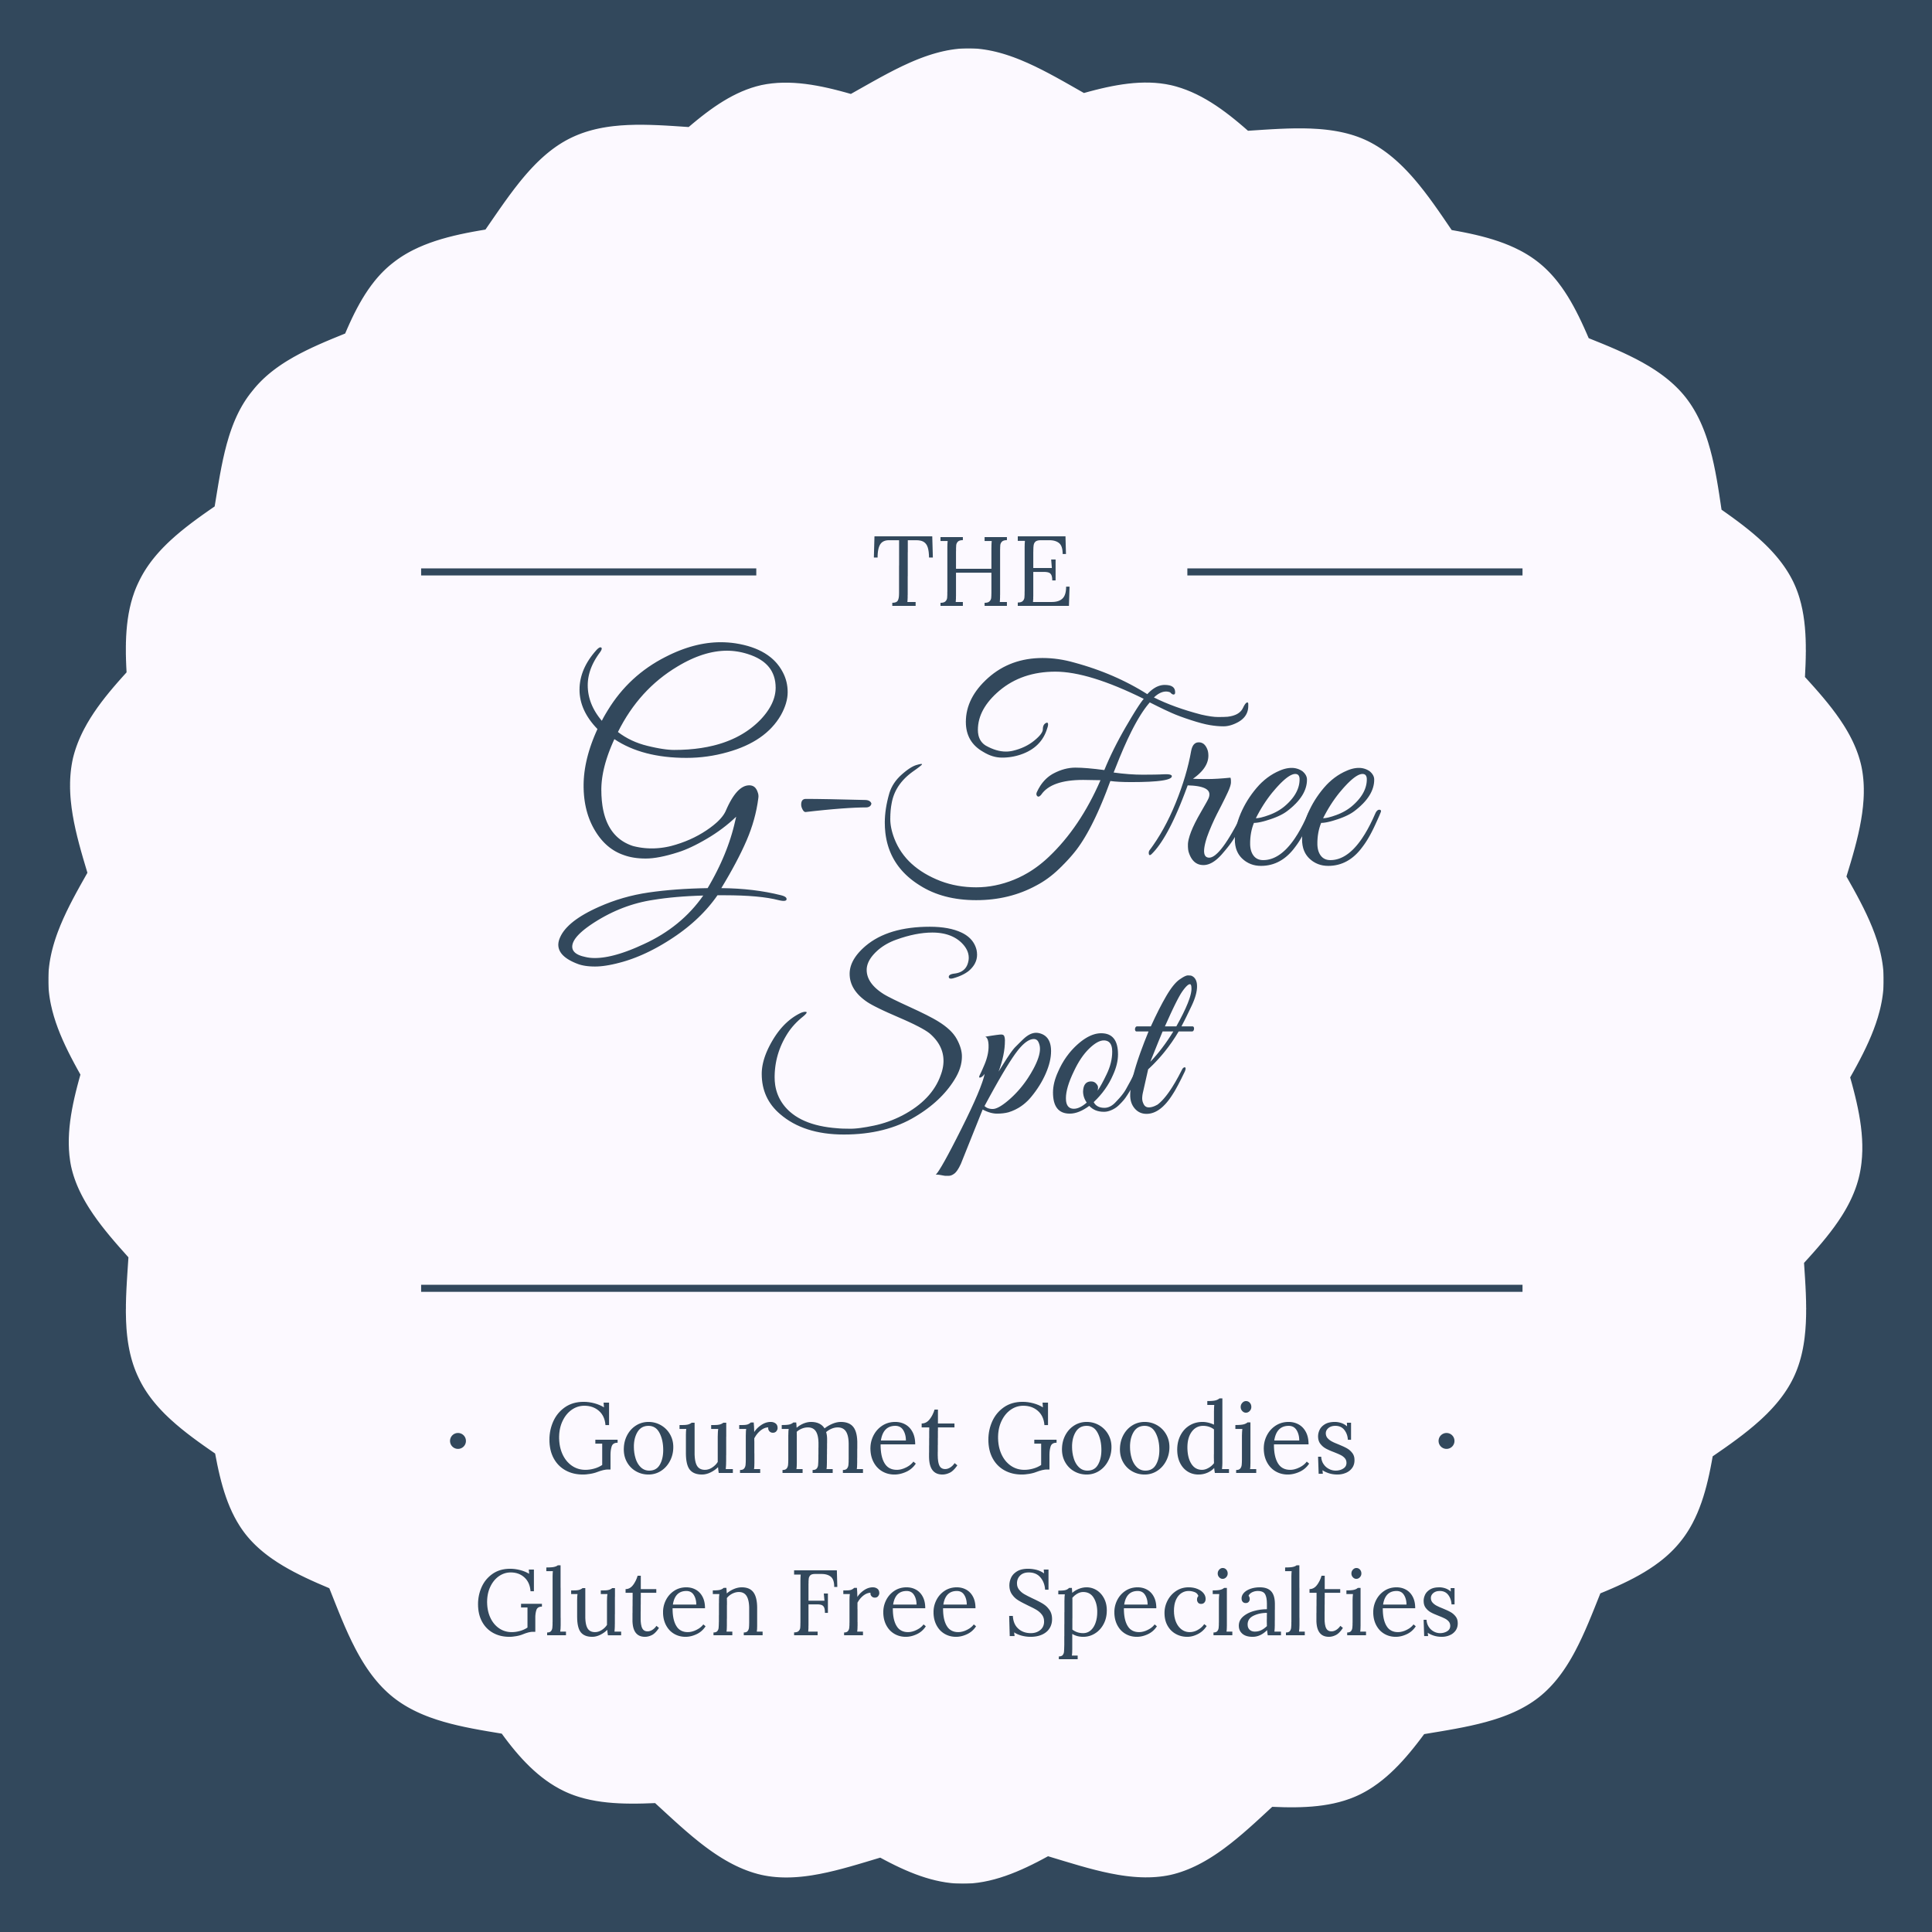 The g Free spot